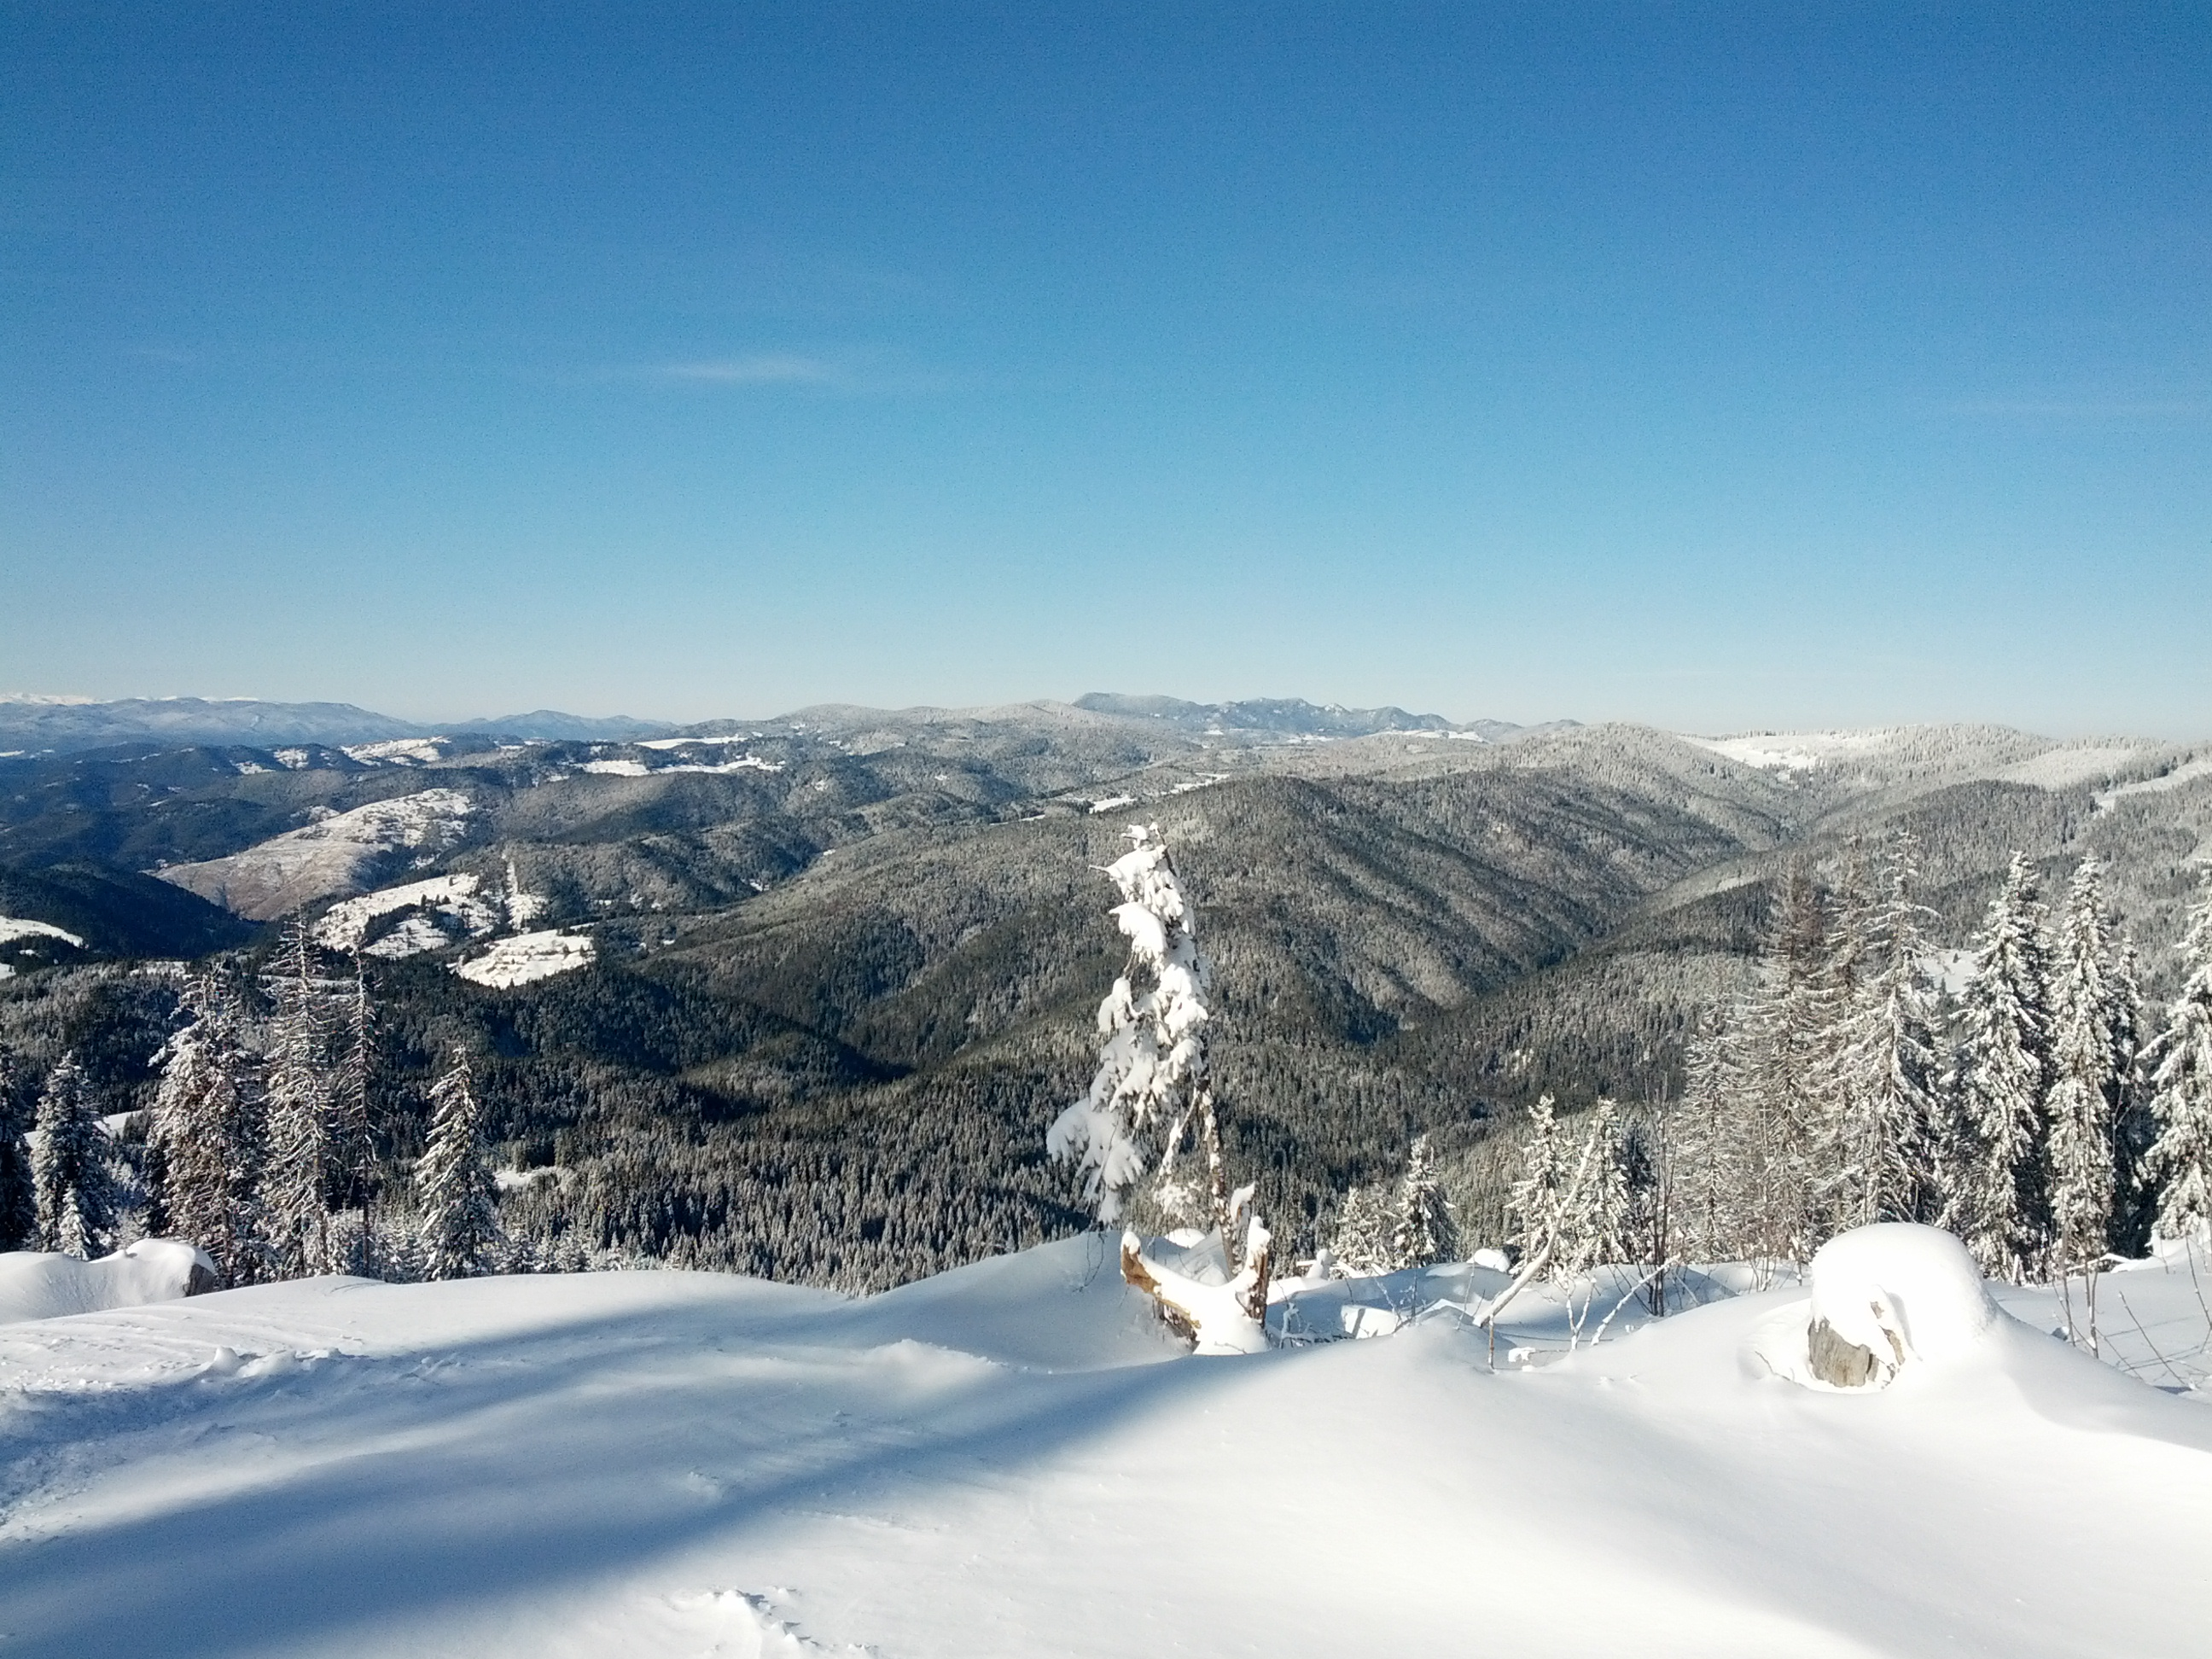 First day of 2015, Pamporovo